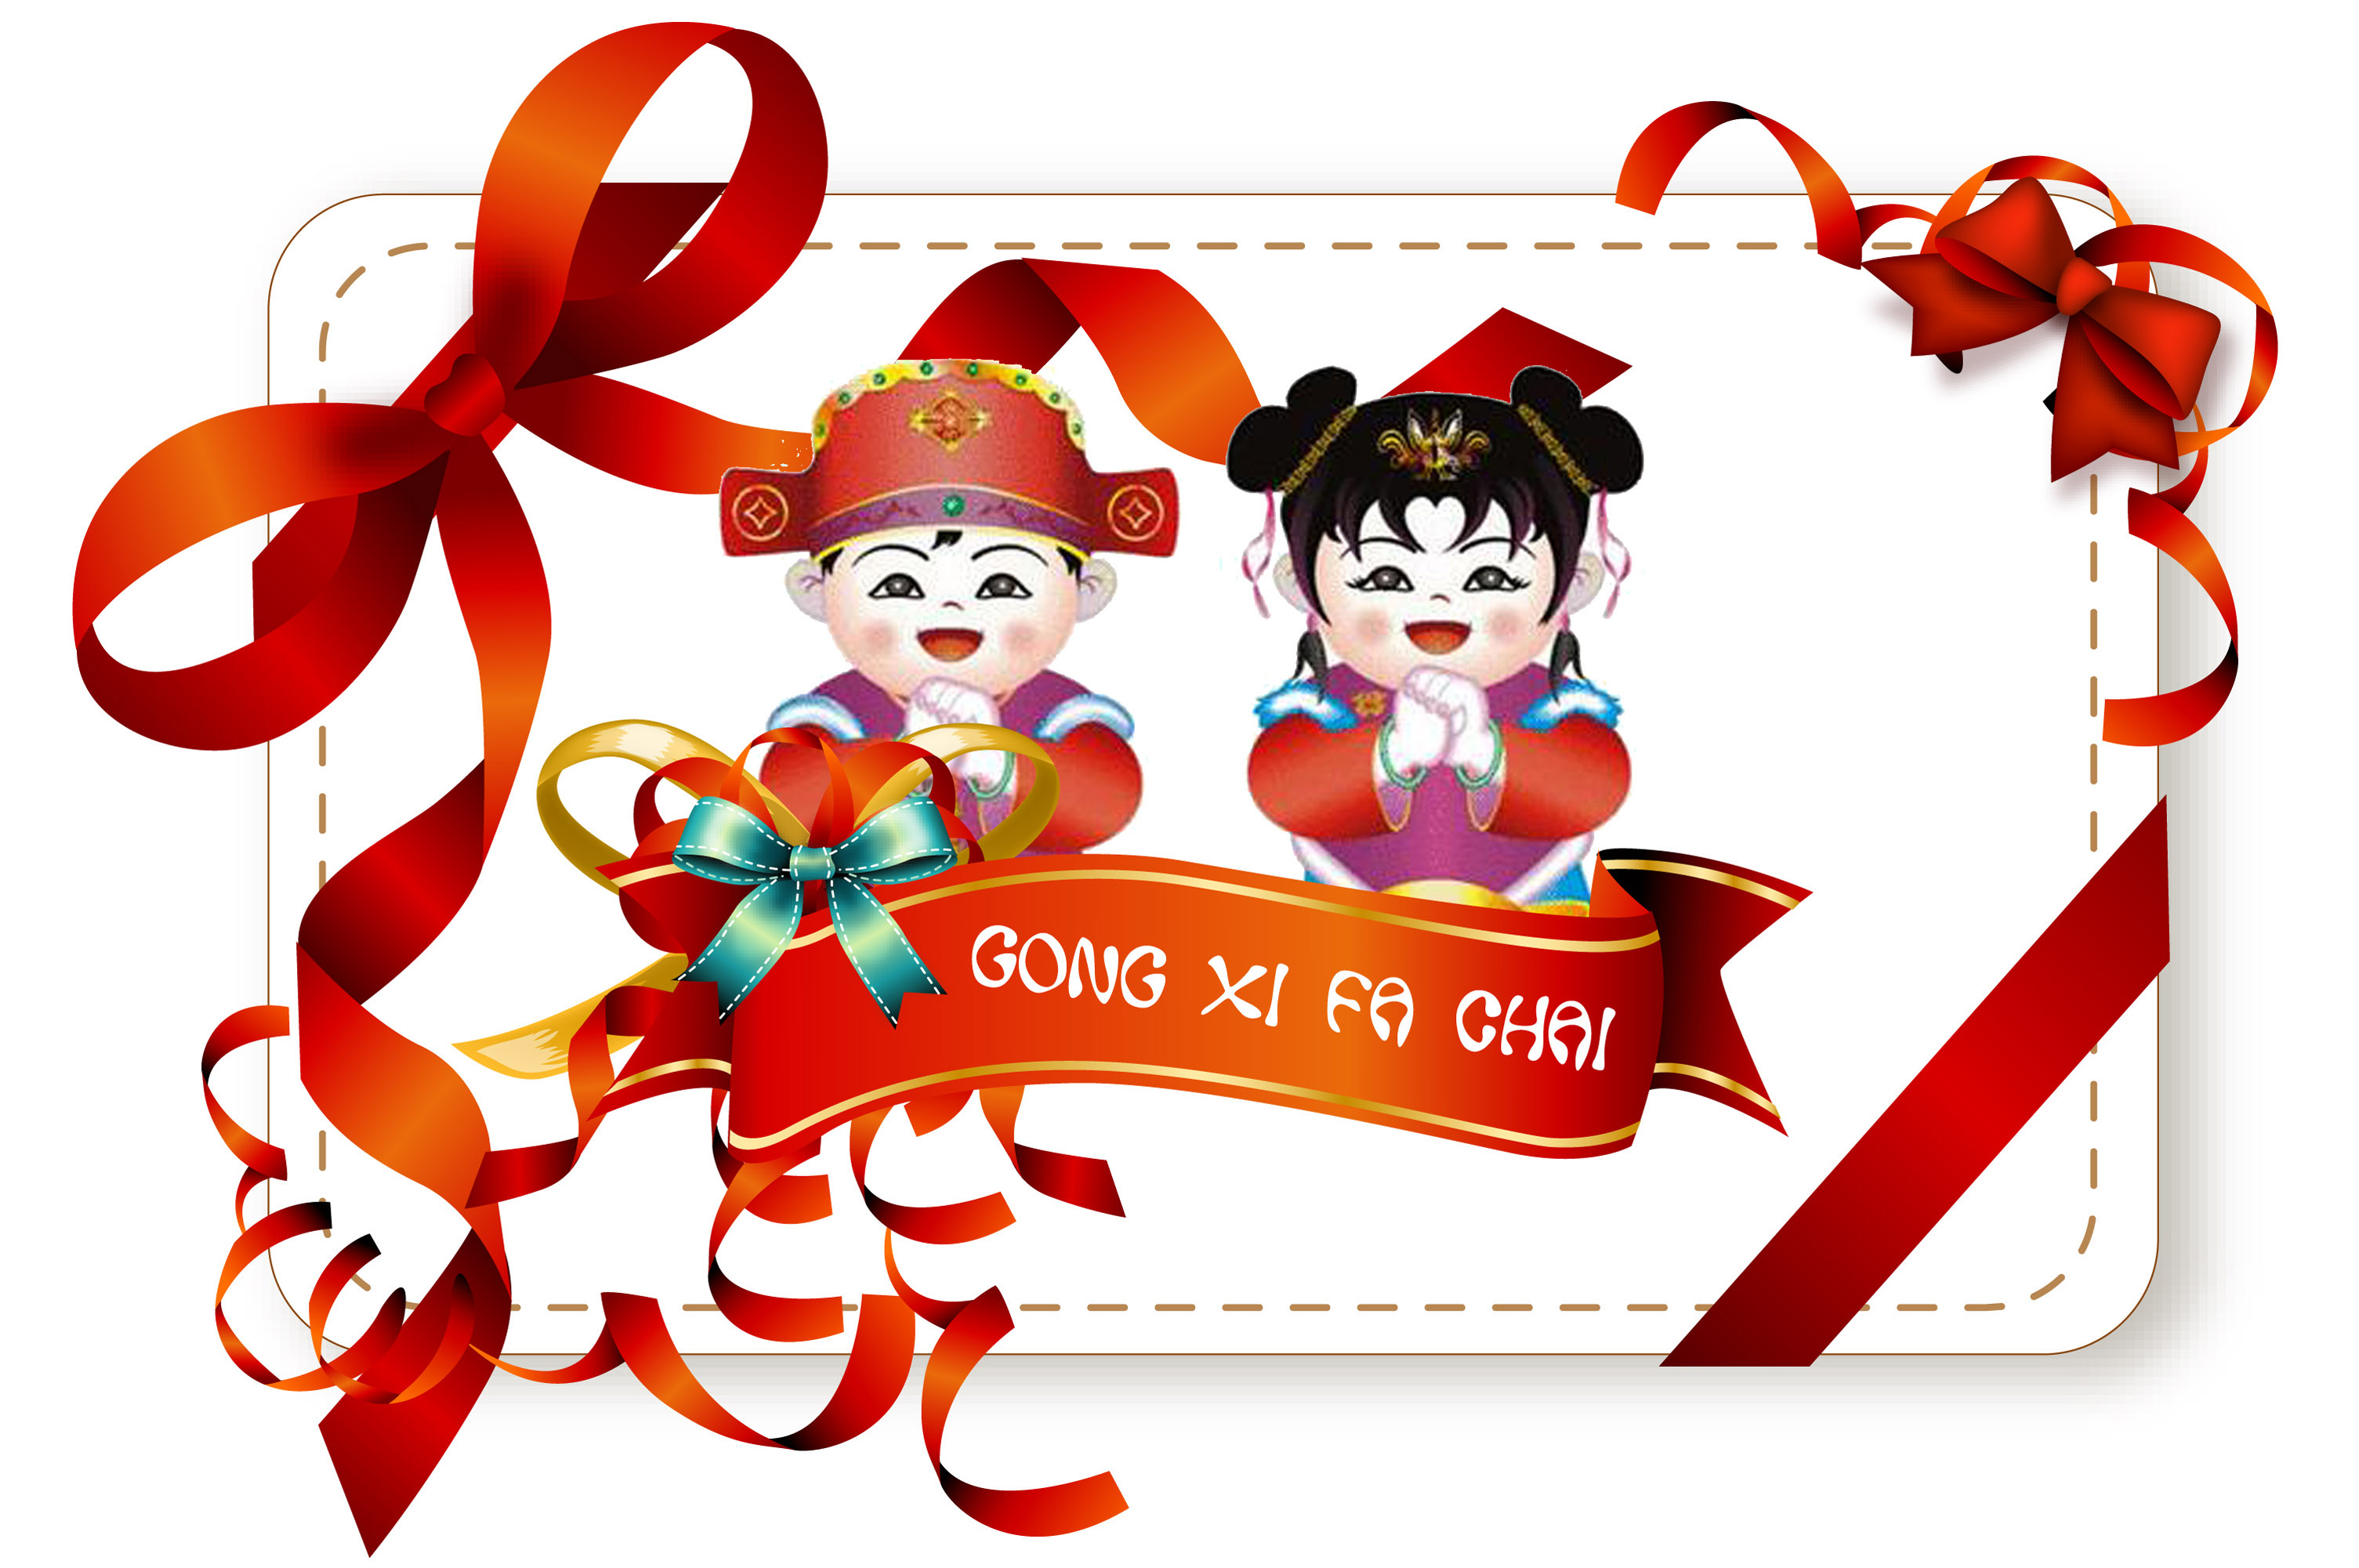 Gong Xi Fat Cai 2018 Wallpaper For Chinese New Year